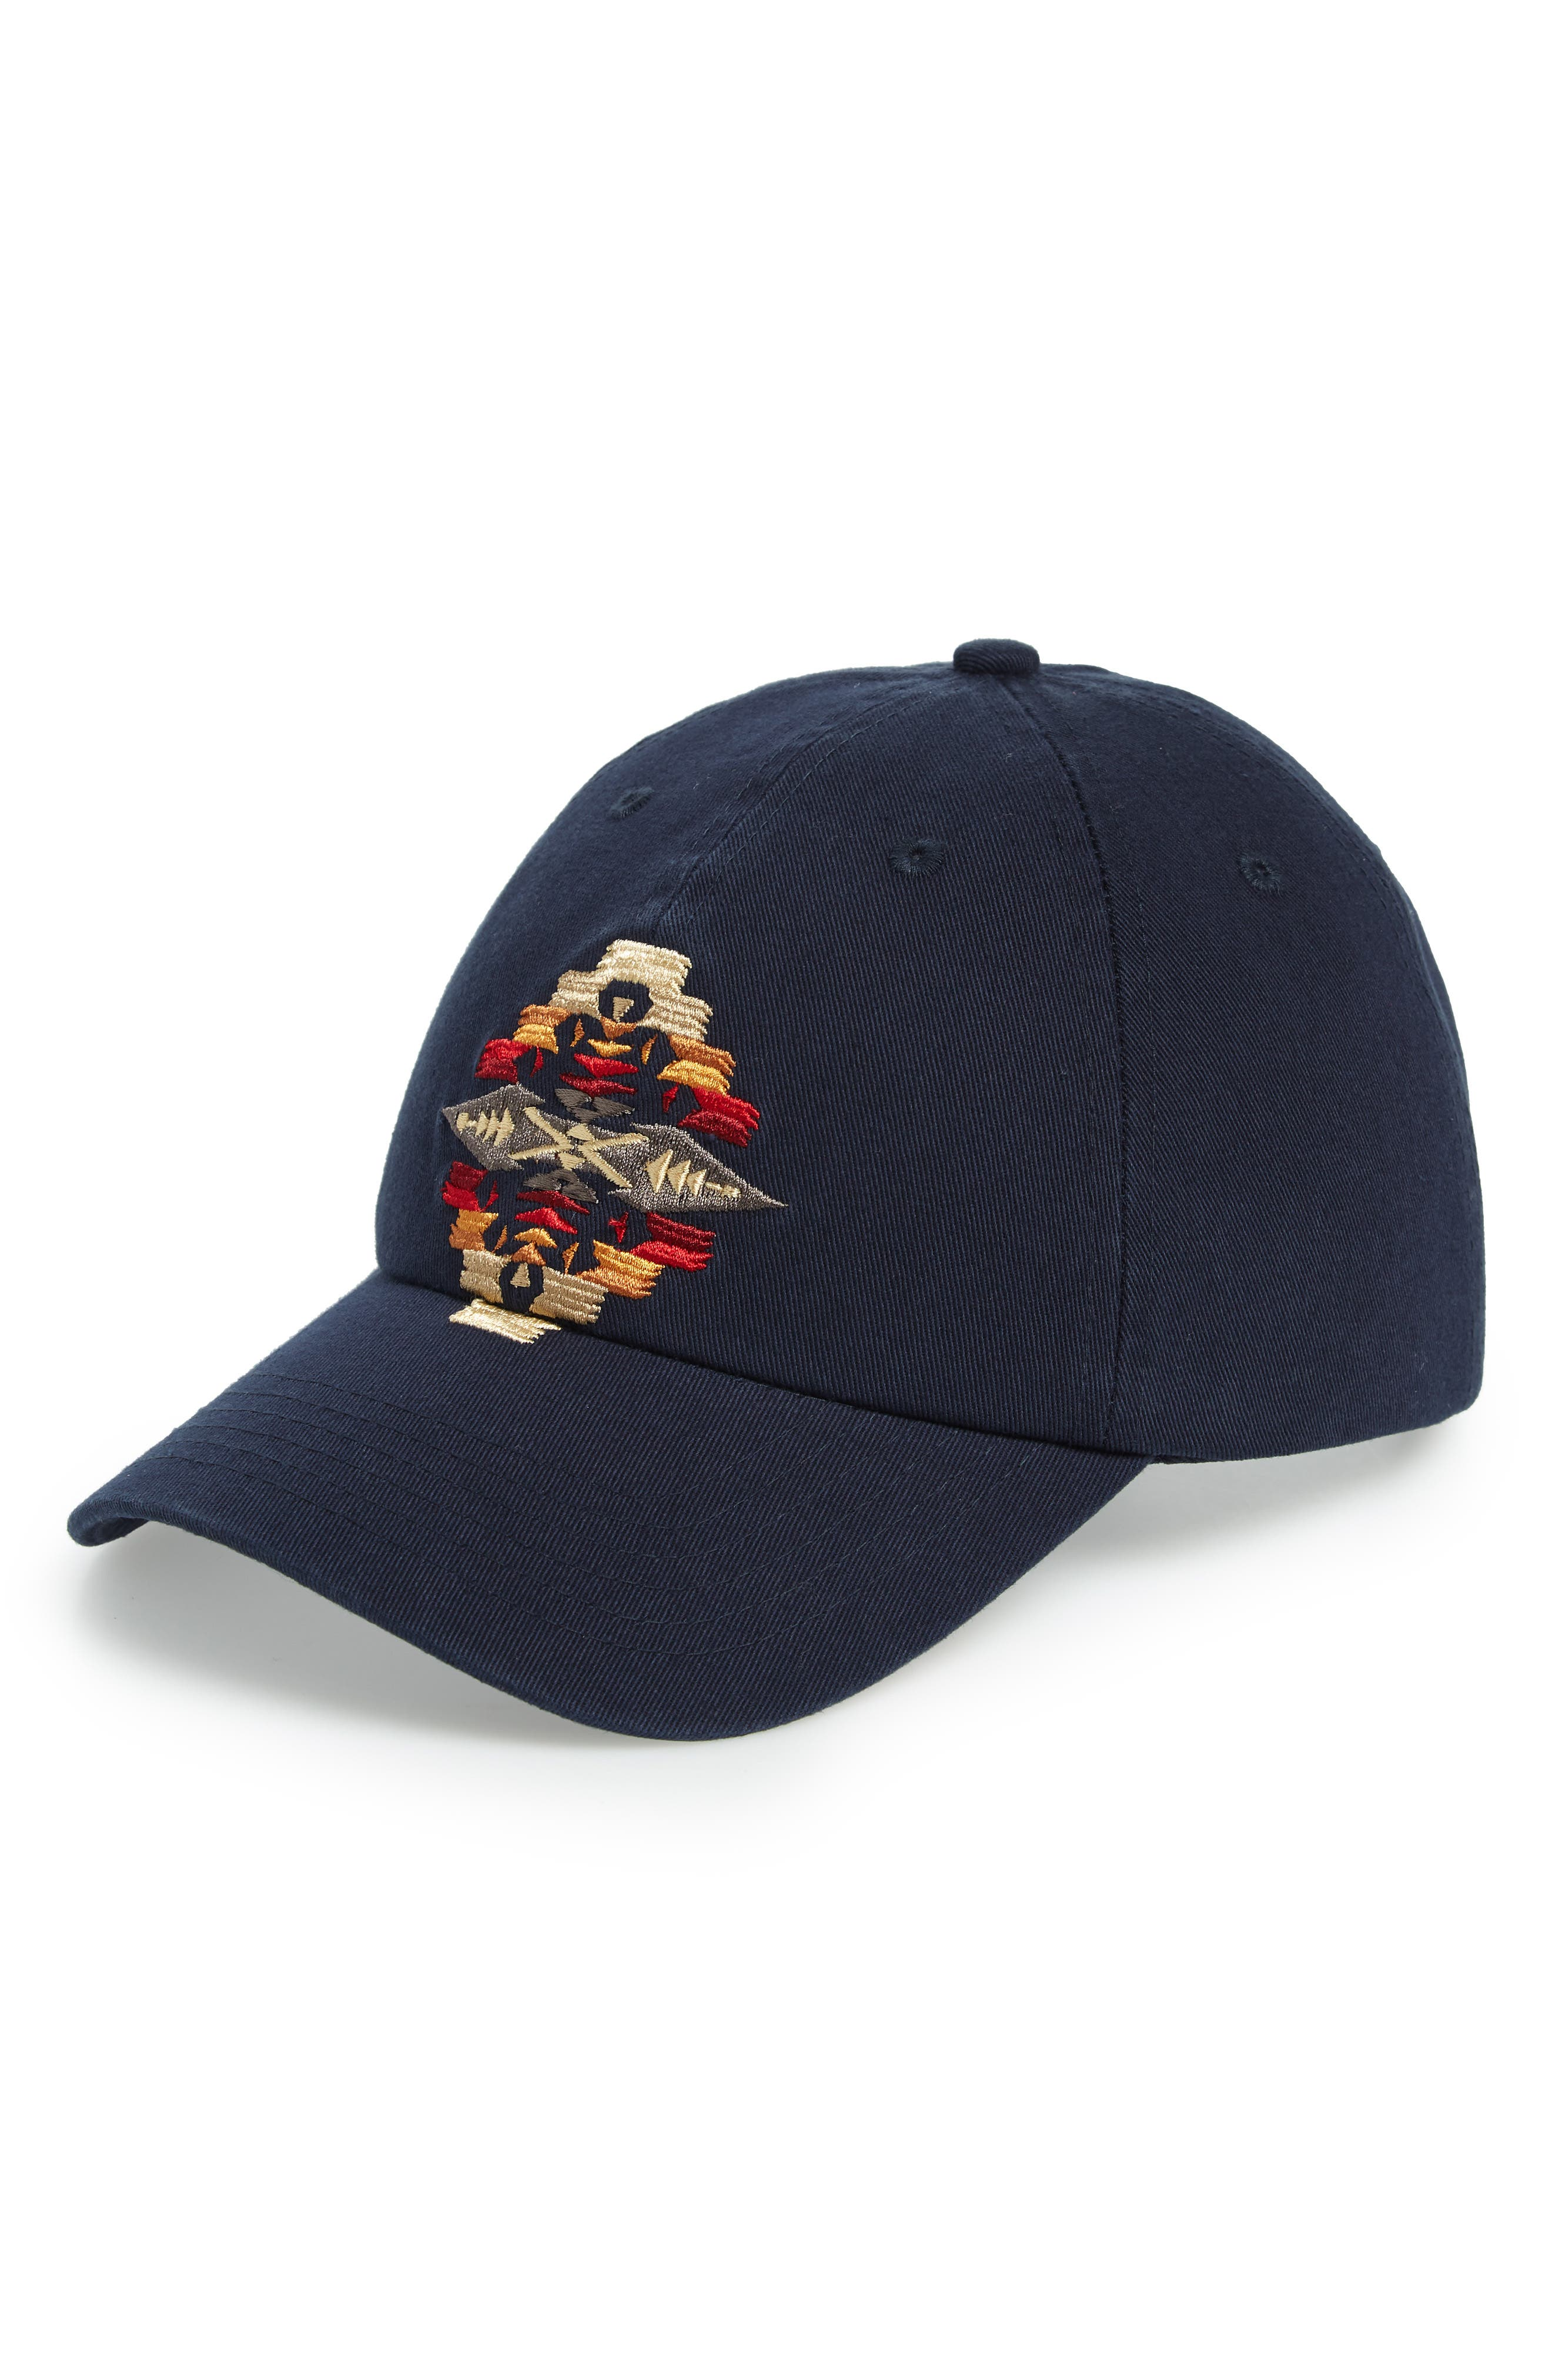 Tucson Embroidered Cap,                             Main thumbnail 1, color,                             NAVY